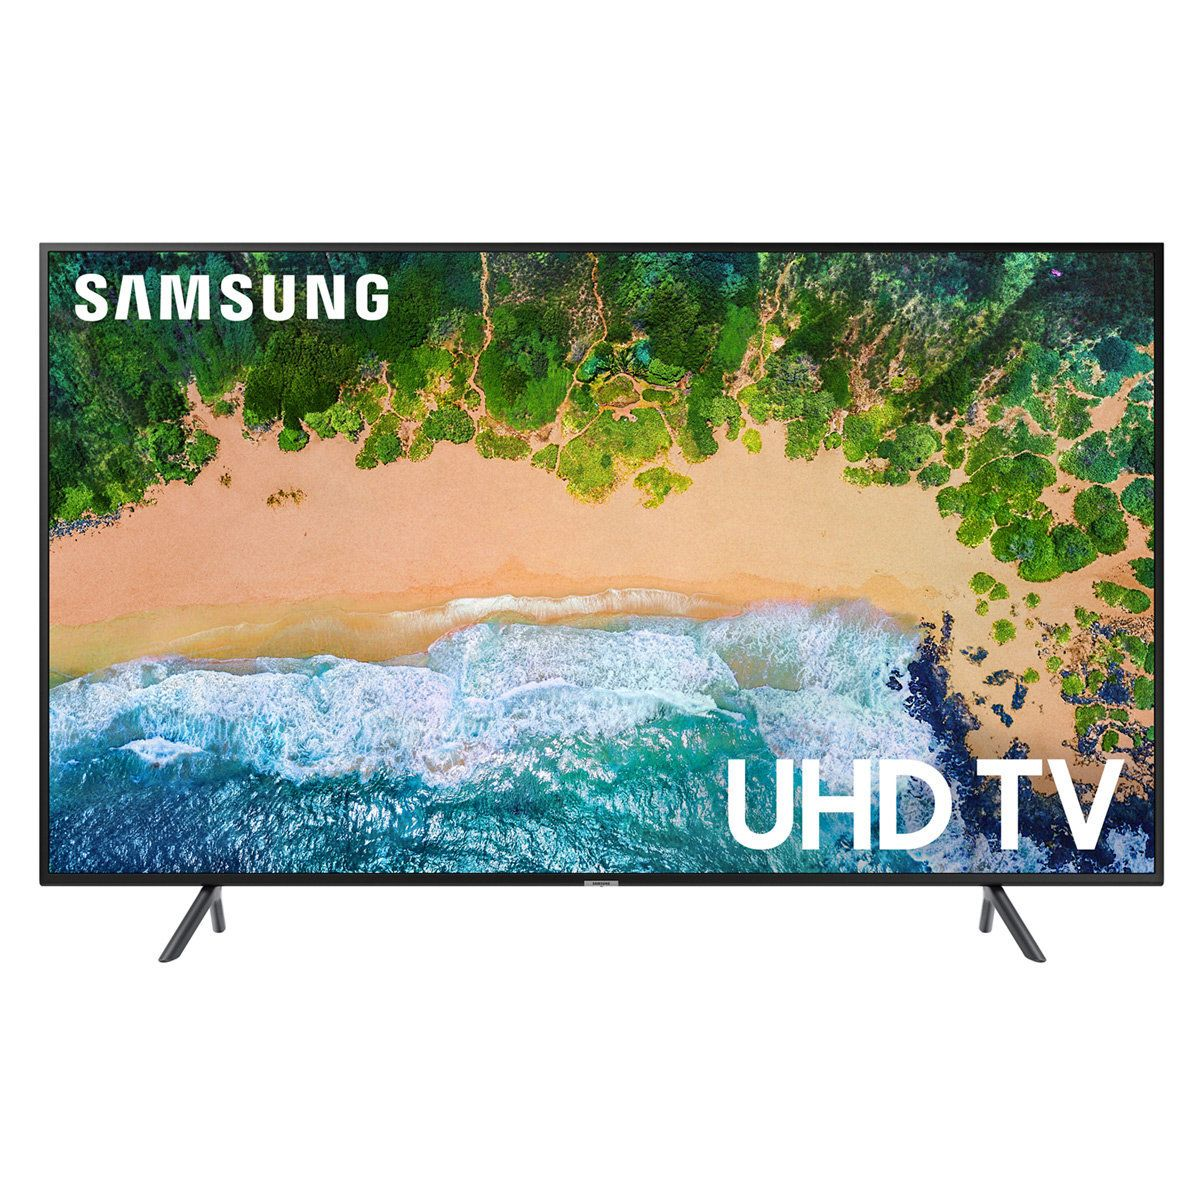 8a7e3a36796 The best cheap 4K TV deals and sale prices in the US - April 2019 ...